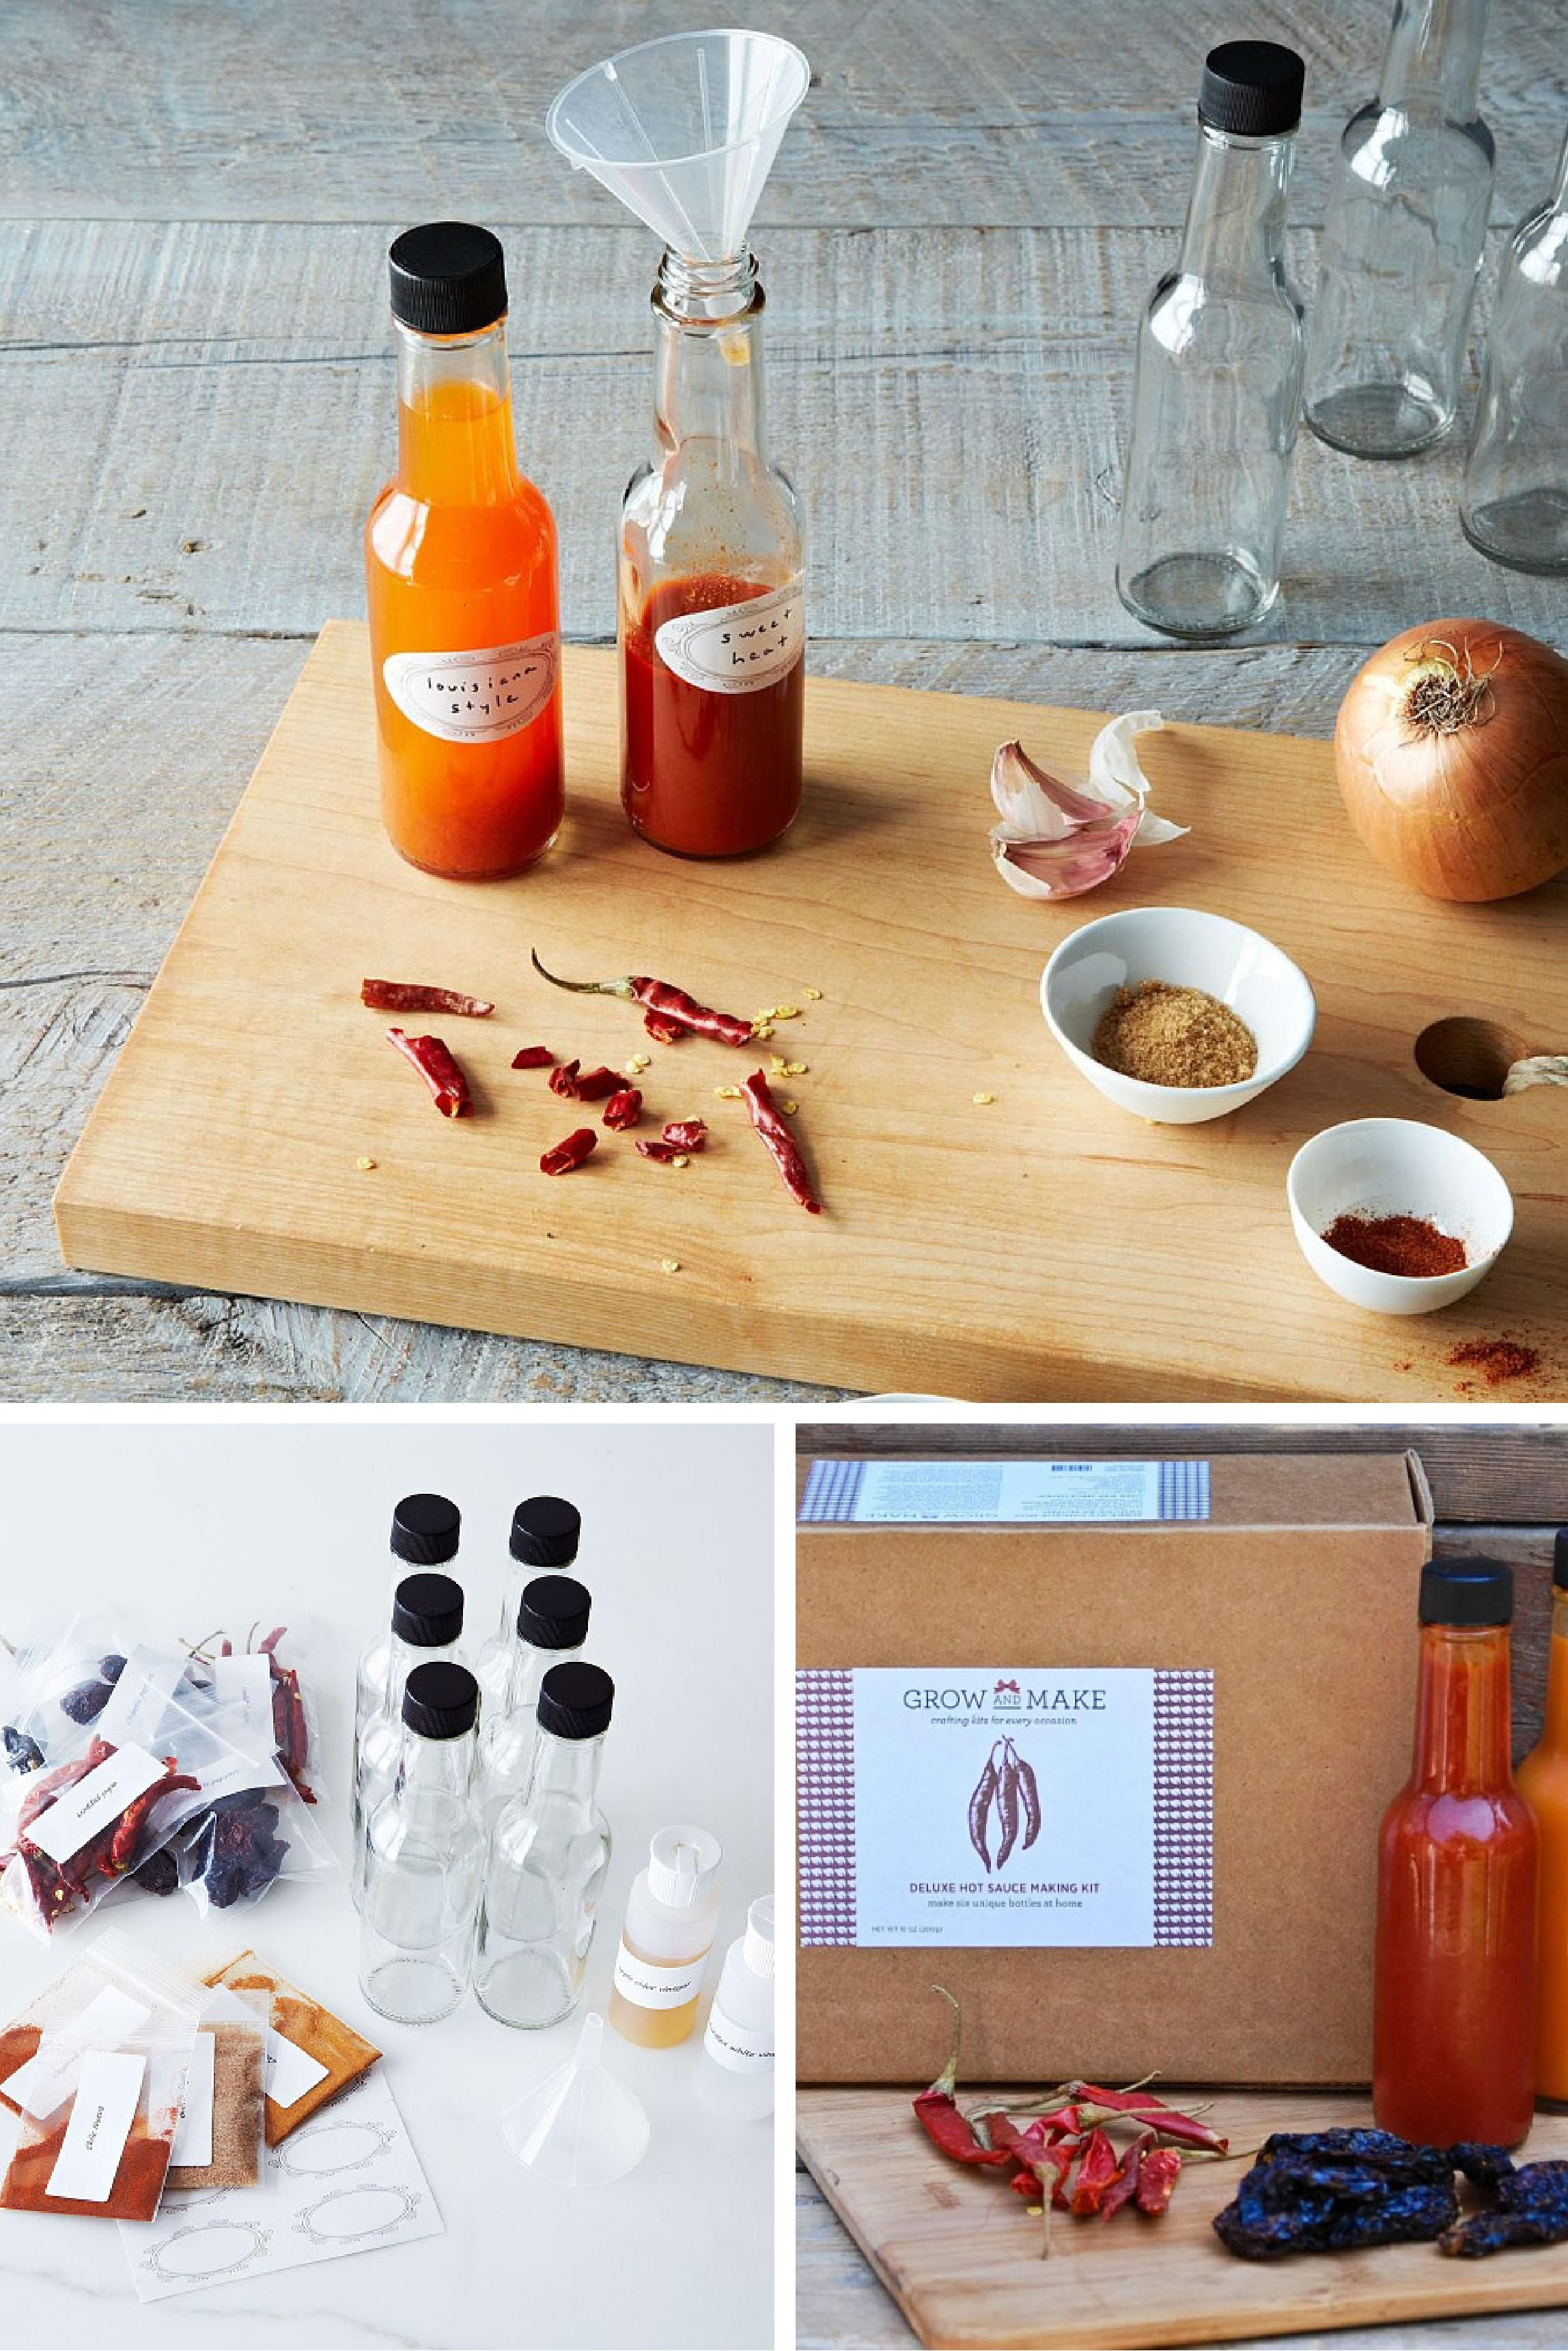 This hotsauce kit is the perfect gift for your spice